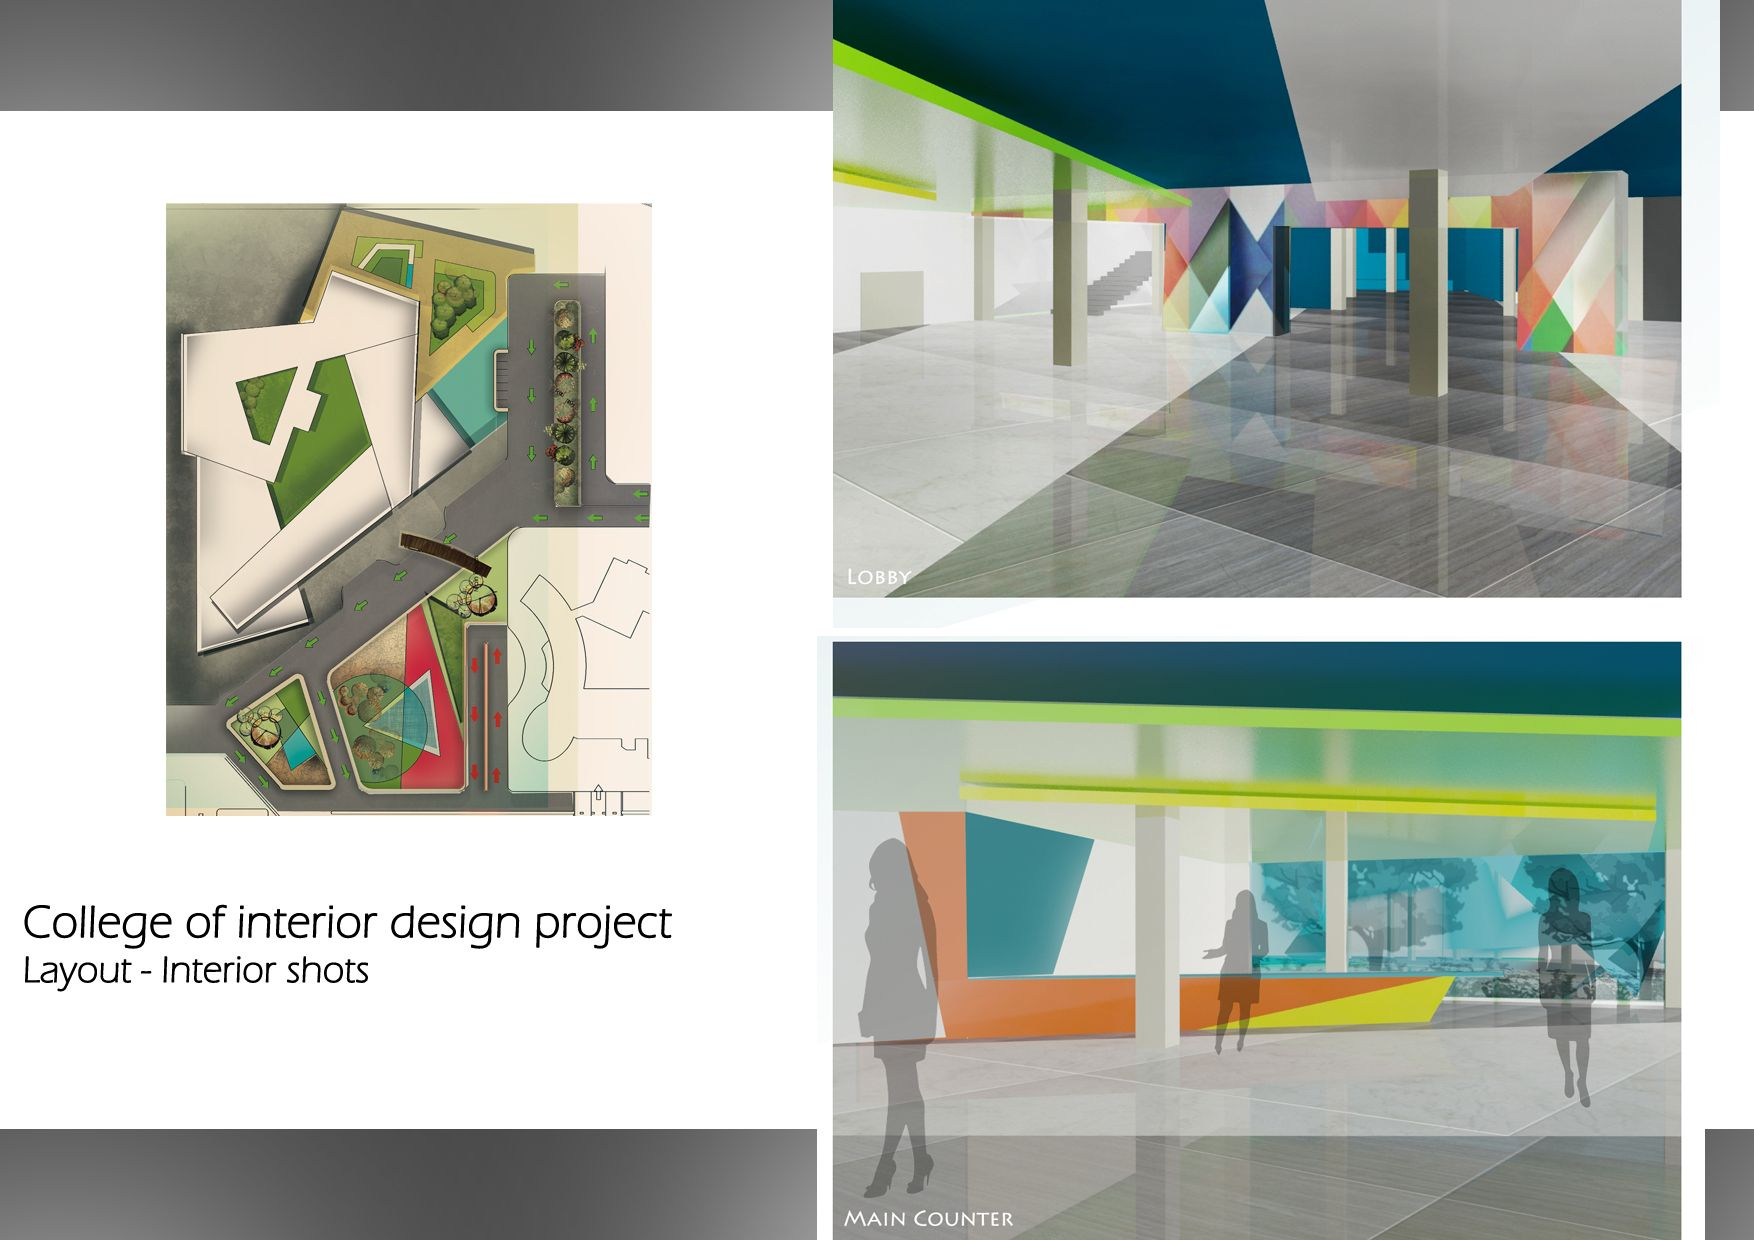 College Of Interior Design Project 4th Year Site Plan And Lobby Perspectives